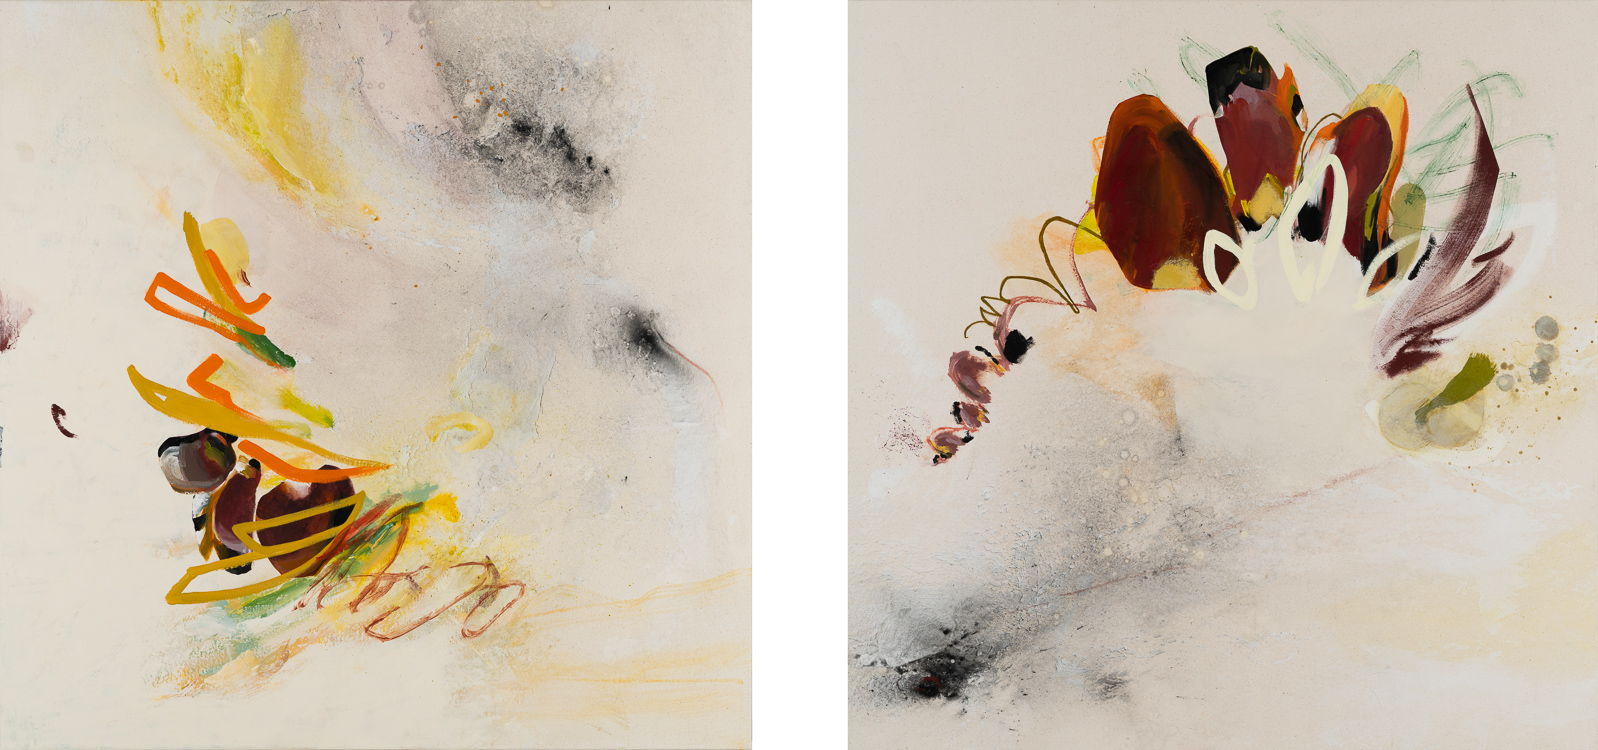 Large contemporary abstract diptych painting, cream and warm tones with bird / fly theme by Laura Letchinger. Street graffiti urban industrial expressionism edge